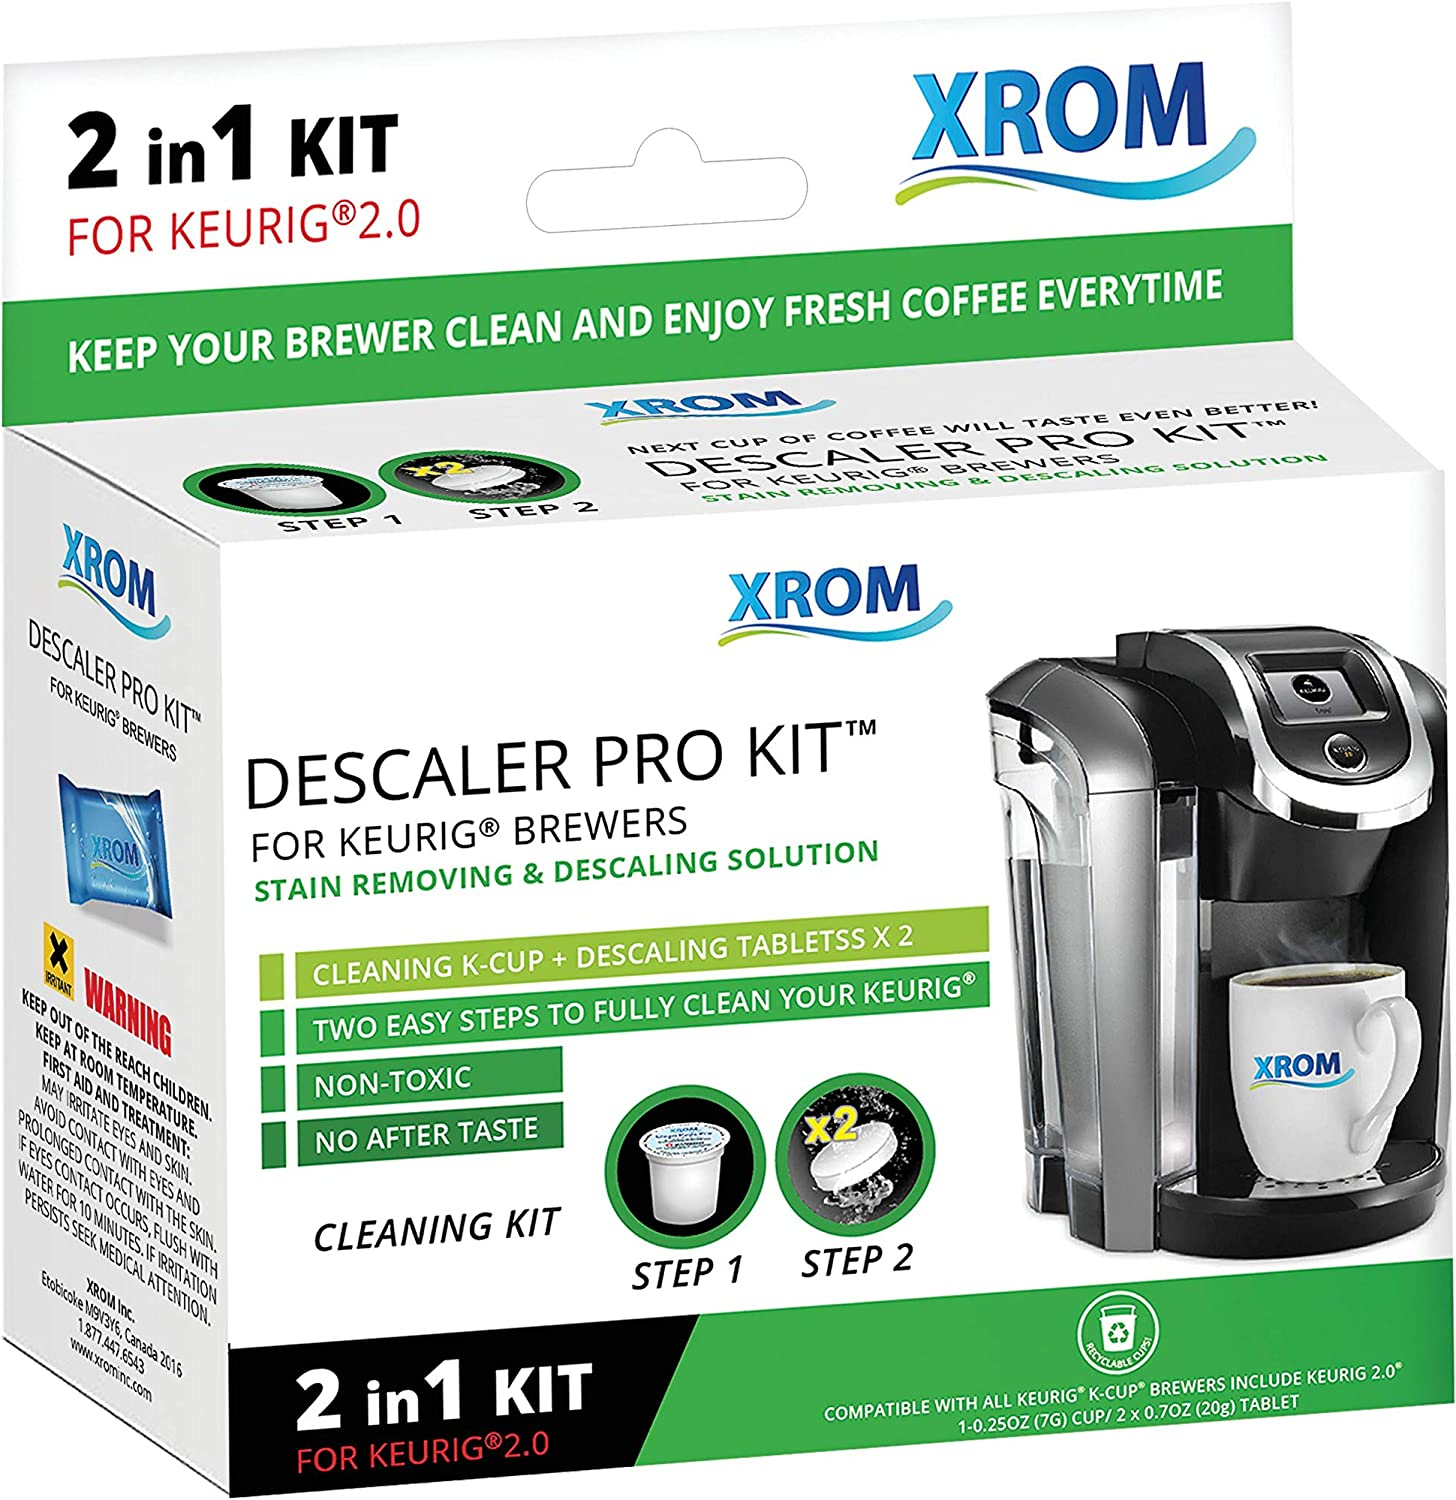 XROM Professional Descaling Kit Compatible With All K-Cup Keurig 2.0 Brewers, Biodegradable, All Natural Ingredients, Full Cycle Cleaning And Descaler Solution For Keurig Coffee Makers 81AmnziRLWL